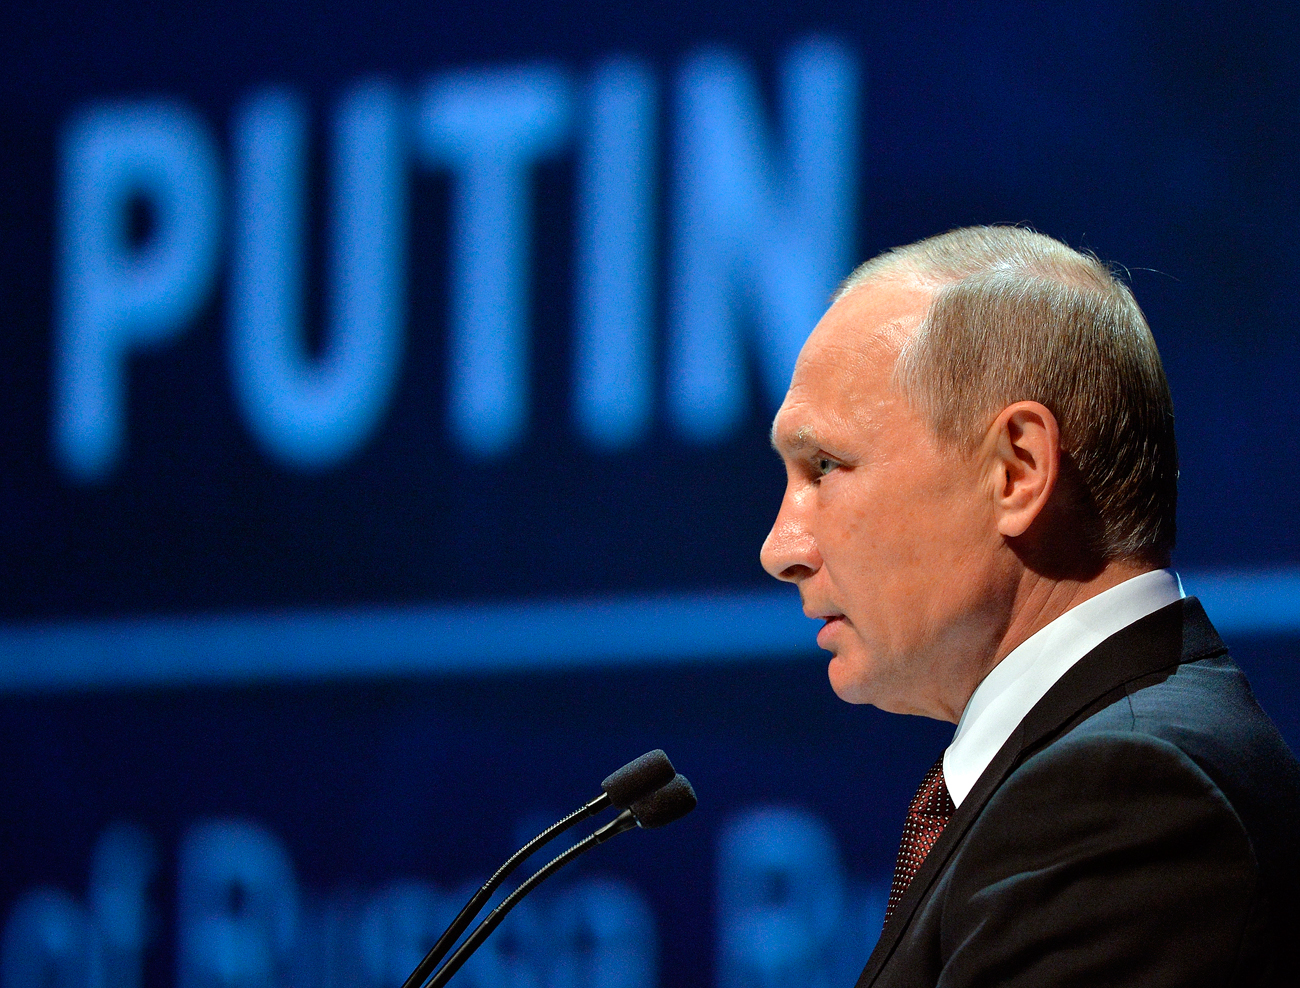 Russian President Vladimir Putin delivers a speech at the World Energy Congress, in Istanbul, Monday, Oct. 10, 2016. Putin is set to meet Turkey's President Recep Tayyip Erdogan, as the two push ahead with steps toward normalizing ties that were strained by Turkey's downing of a Russian warplane near the border with Syria last year